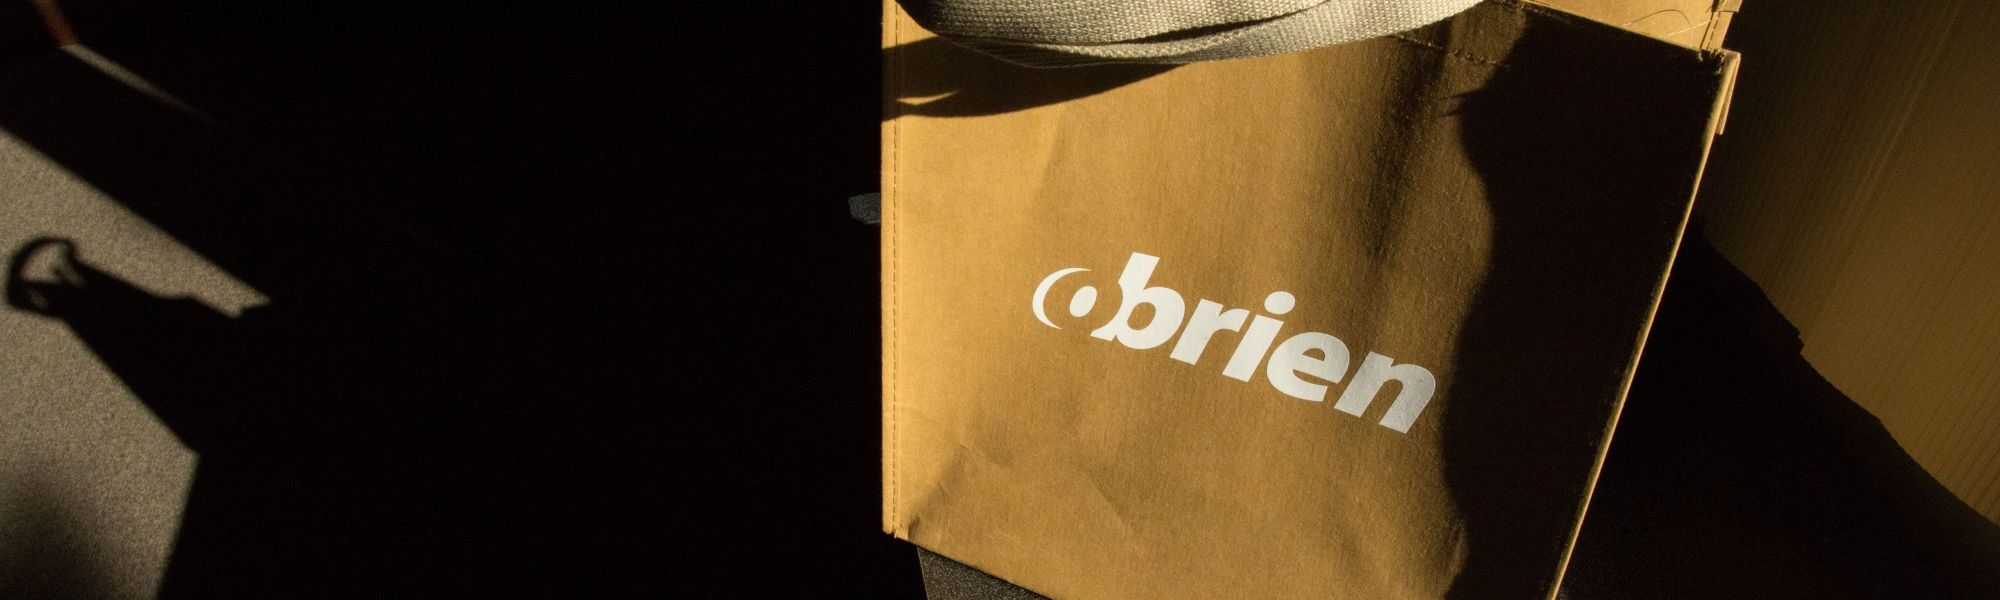 O'Brien tan tote bag with an O'Brien logo in white on the center of the tote bag.